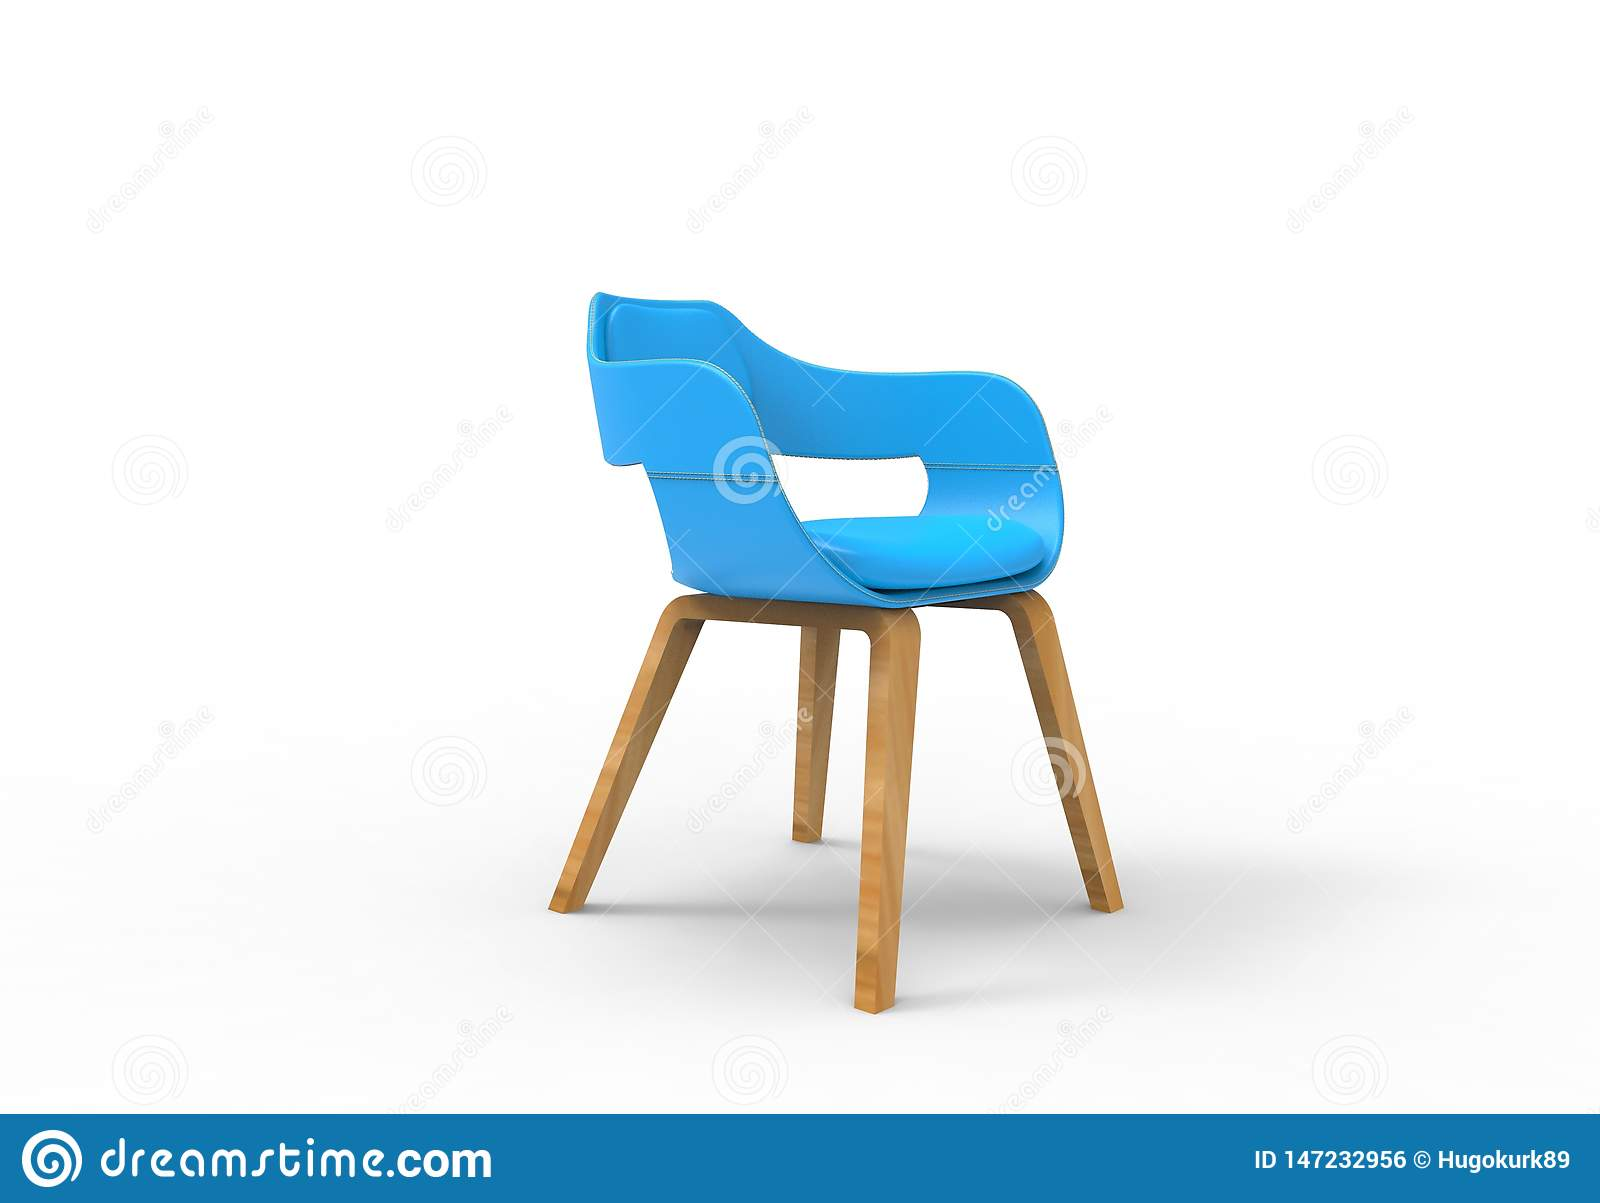 3D illustration rendering of a light blue round leather design chair